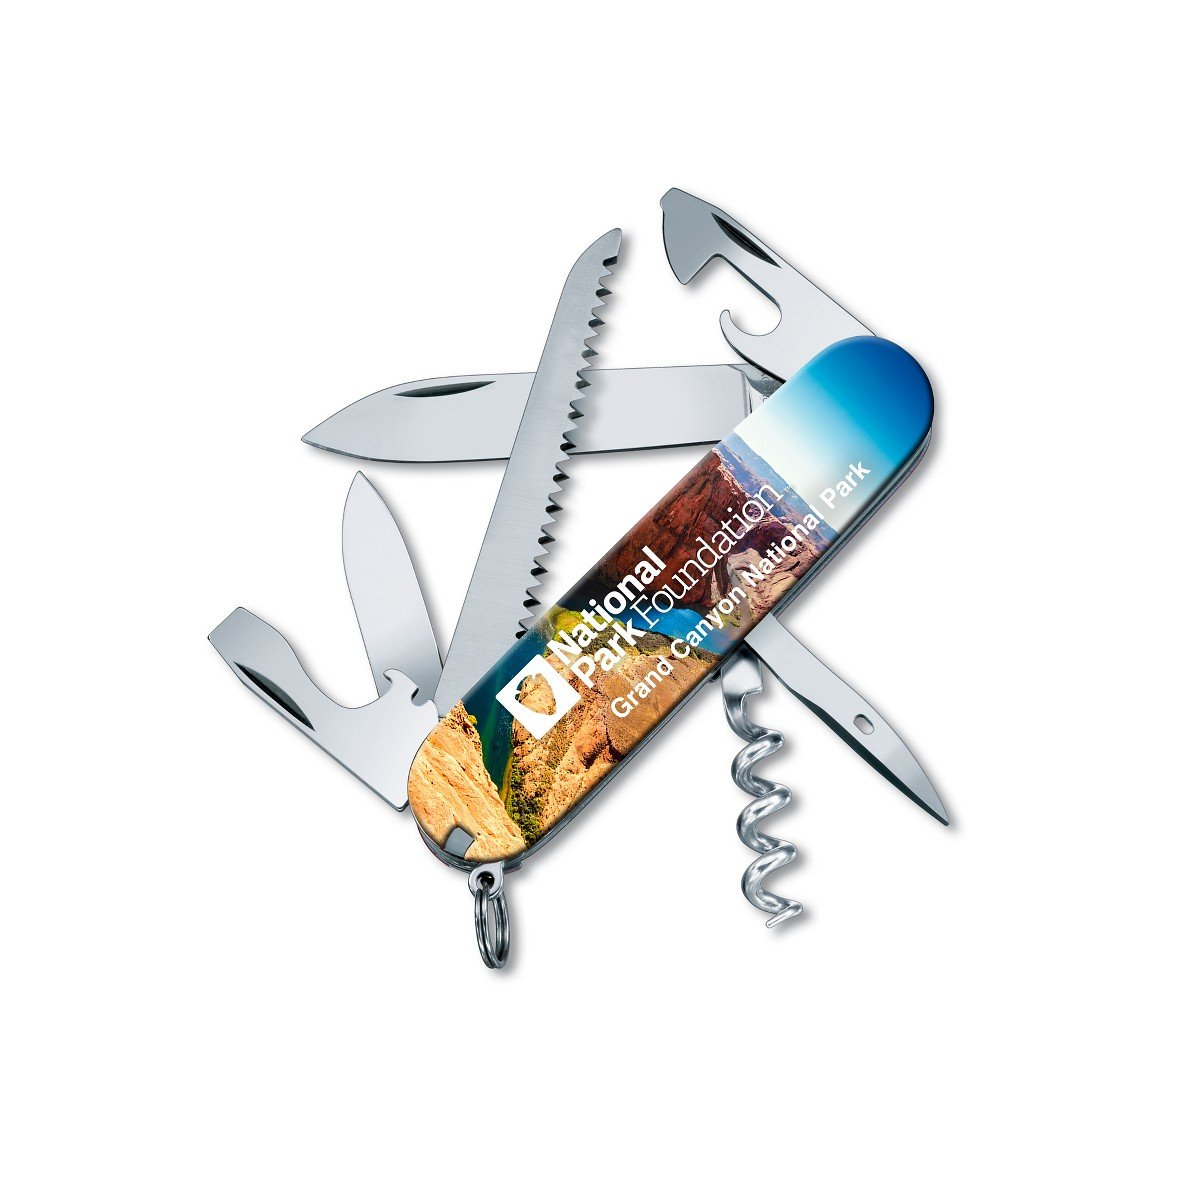 Victorinox Swiss Army Camper Pocket Knife, Grand Canyon National Park by Victorinox